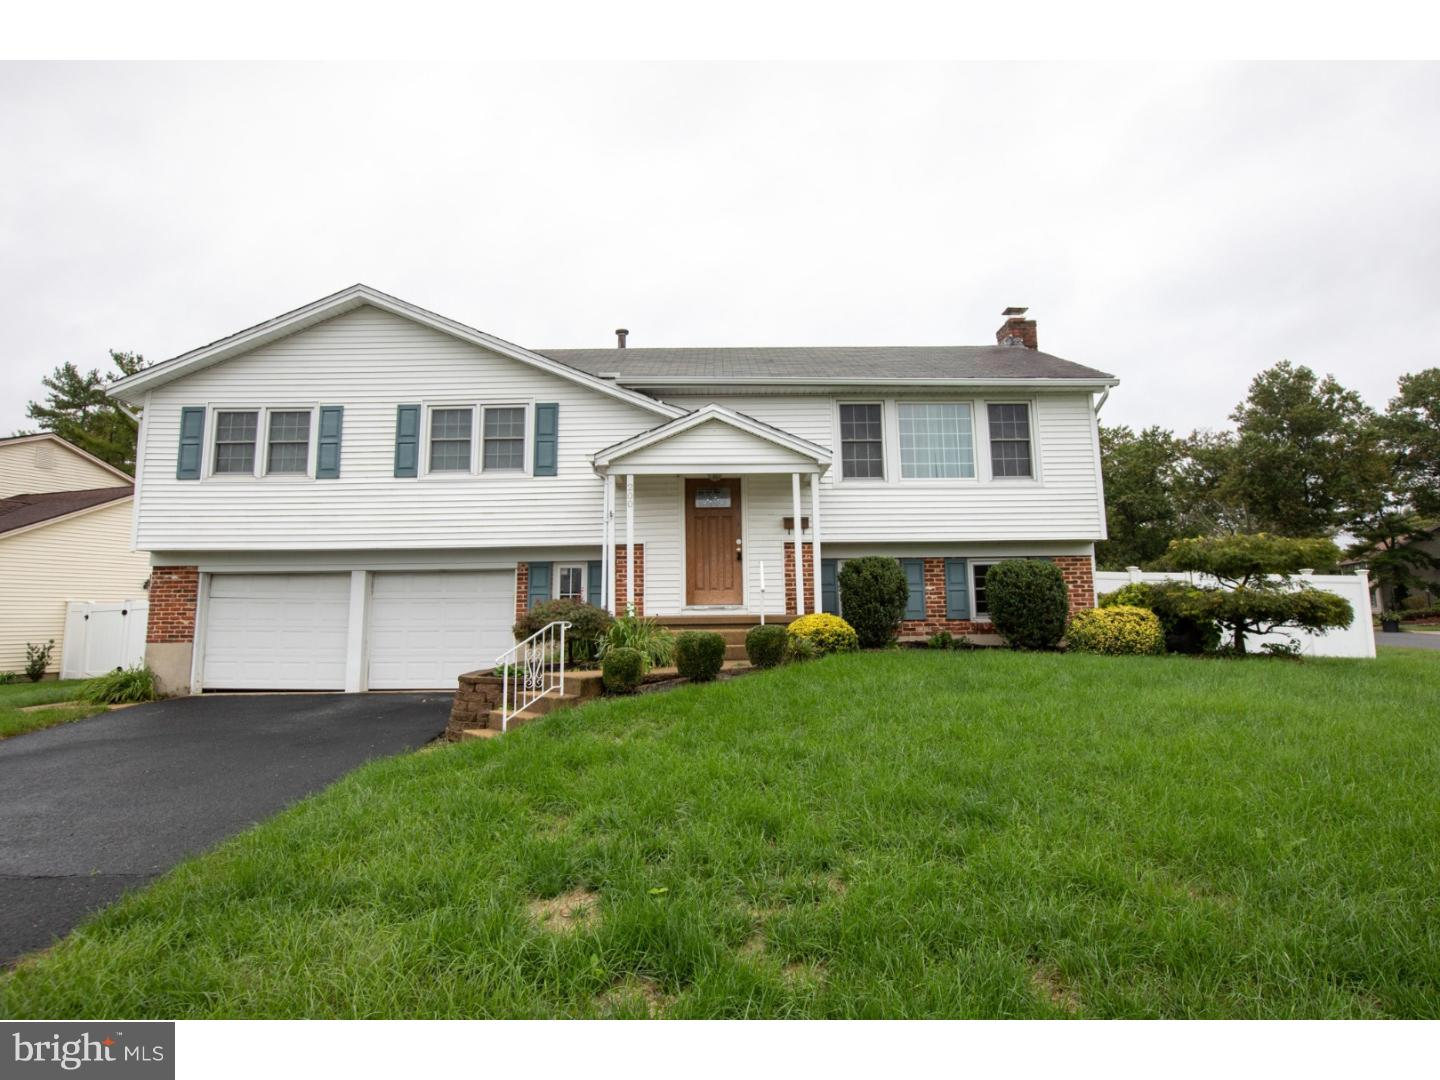 Single Family Home for Sale at 200 ORCHARD Avenue Somerdale, New Jersey 08083 United States